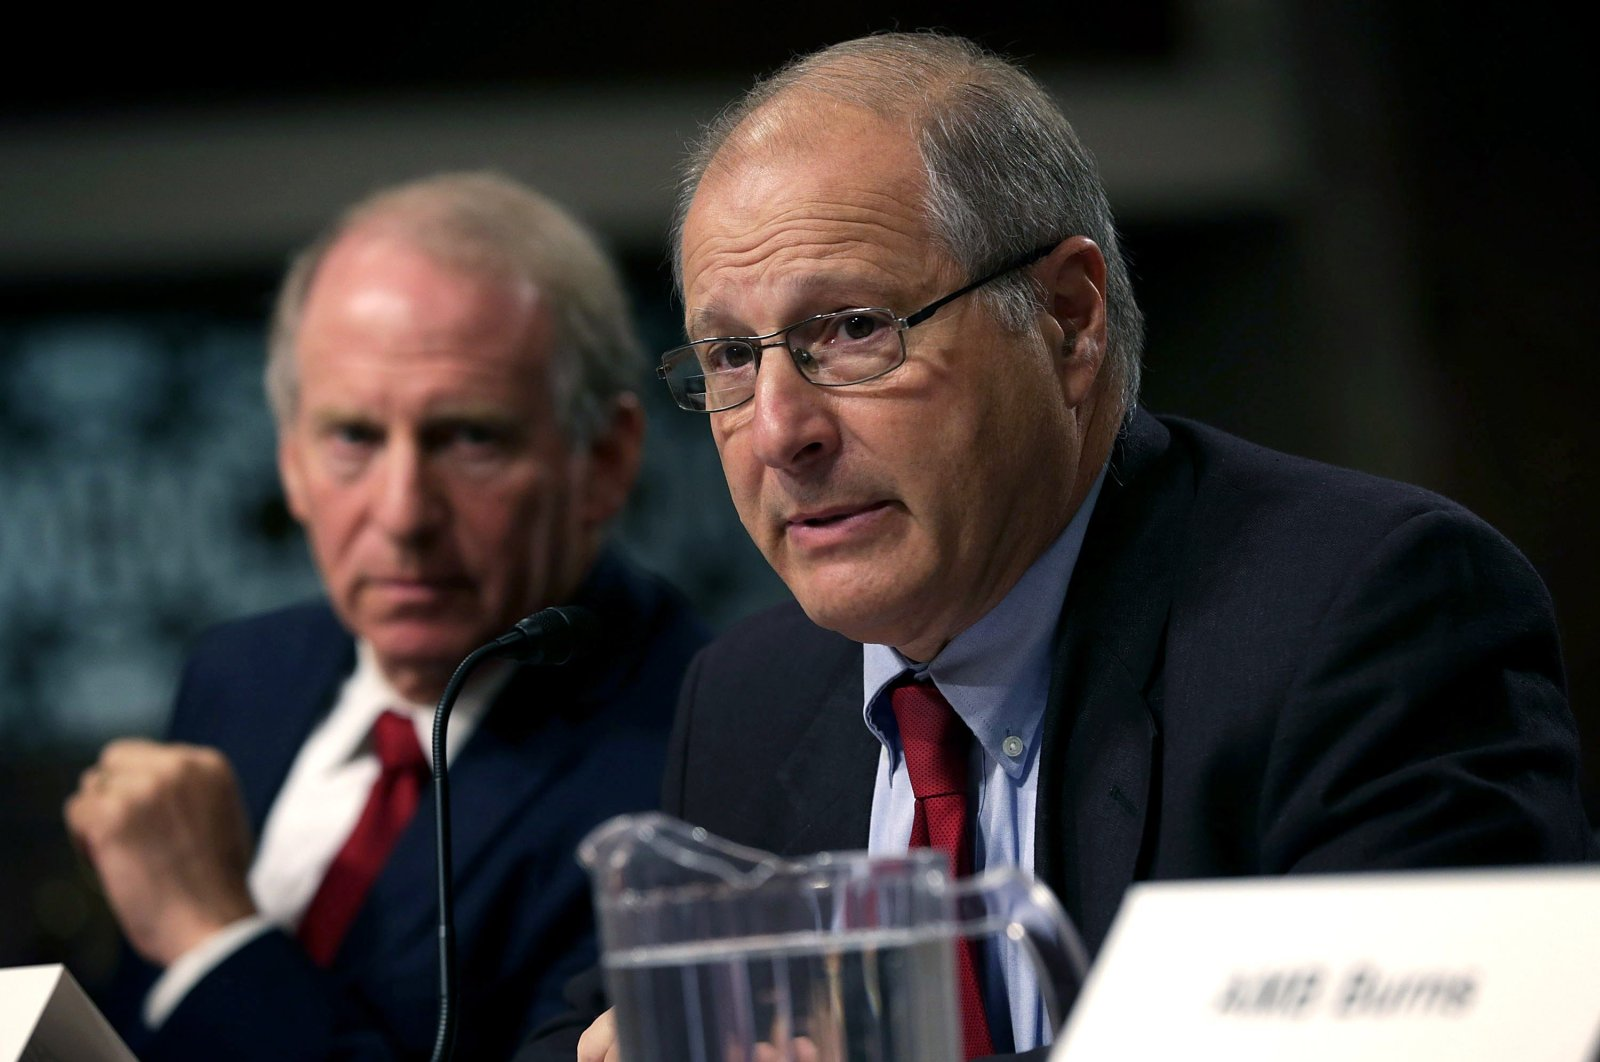 President of the Council on Foreign Relations and former director of policy planning at the State Department Richard Haass (L) and former Defense Undersecretary for Policy Eric Edelman (R) testify during a hearing before Senate Armed Services Committee on Capitol Hill in Washington, D.C., Aug. 4, 2015. (AFP Photo)